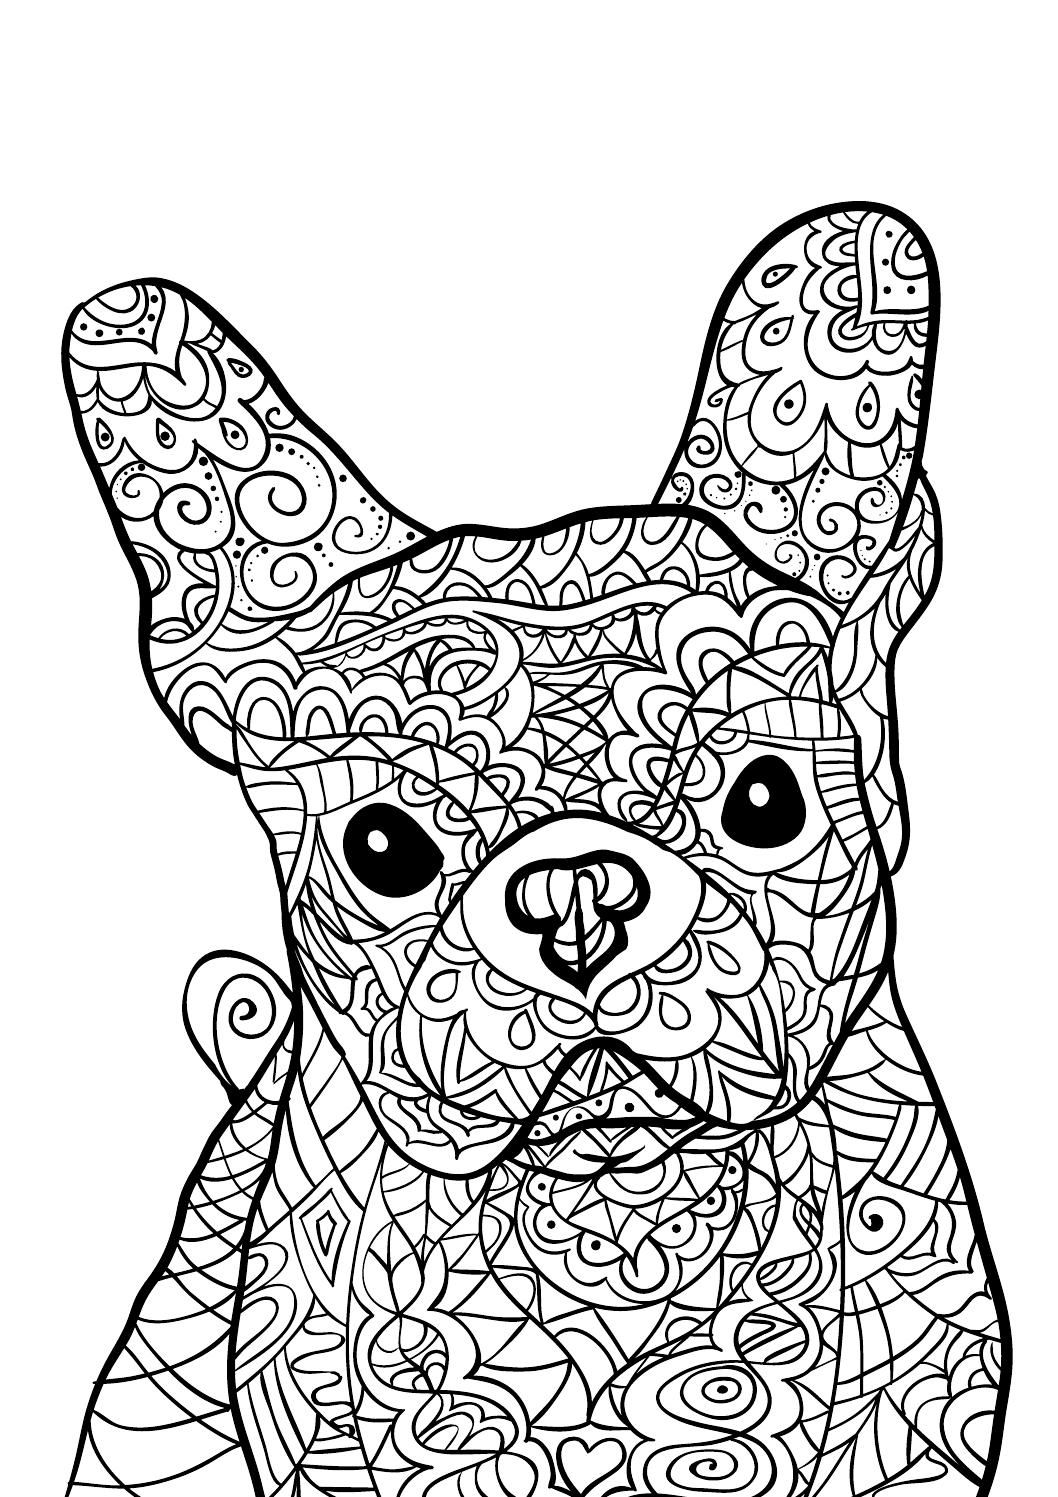 difficult dog coloring pages printable dog coloring pages that are hard yahoo image dog pages coloring difficult